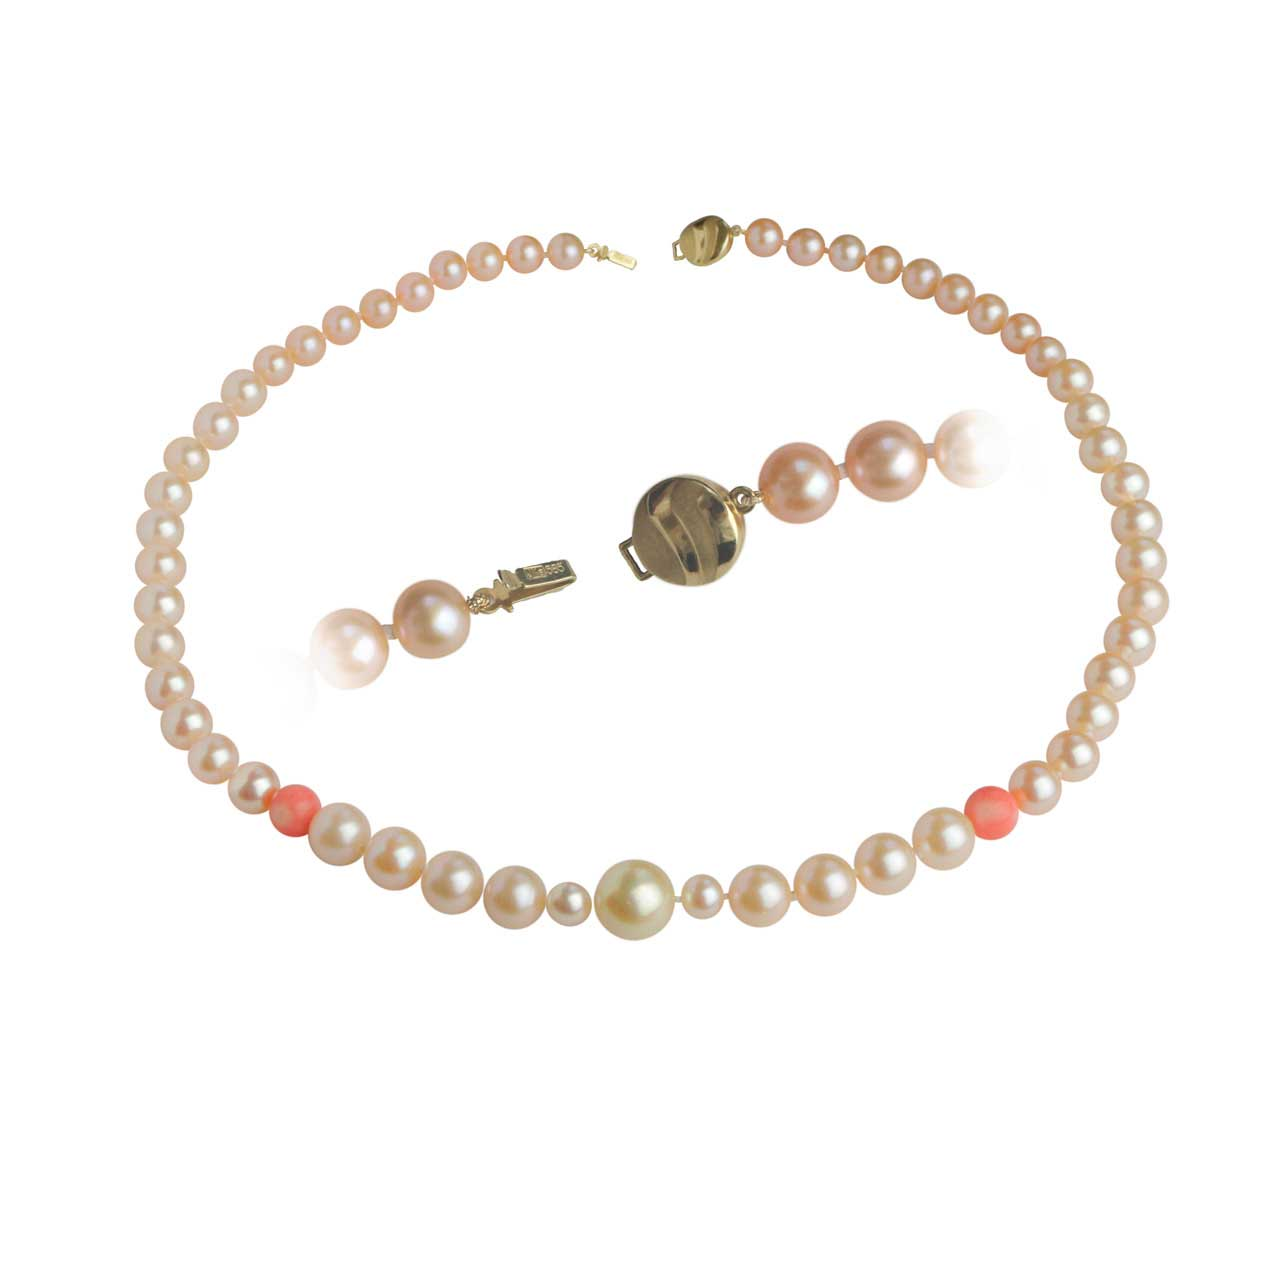 Peach pearl necklace 1